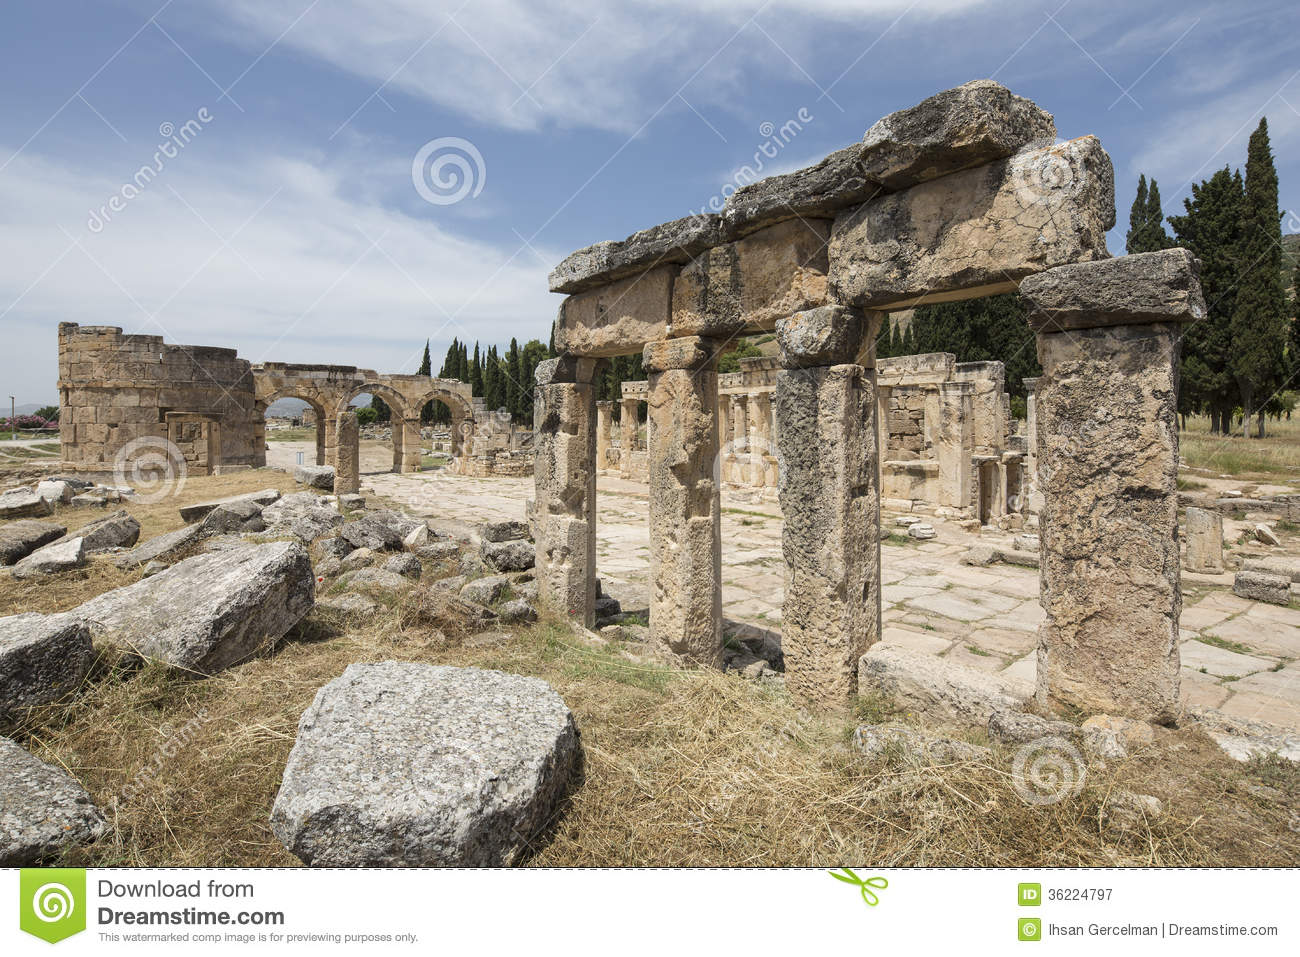 Ruins Of Hierapolis In Denizli, Turkey Royalty Free Stock Photography - Image...